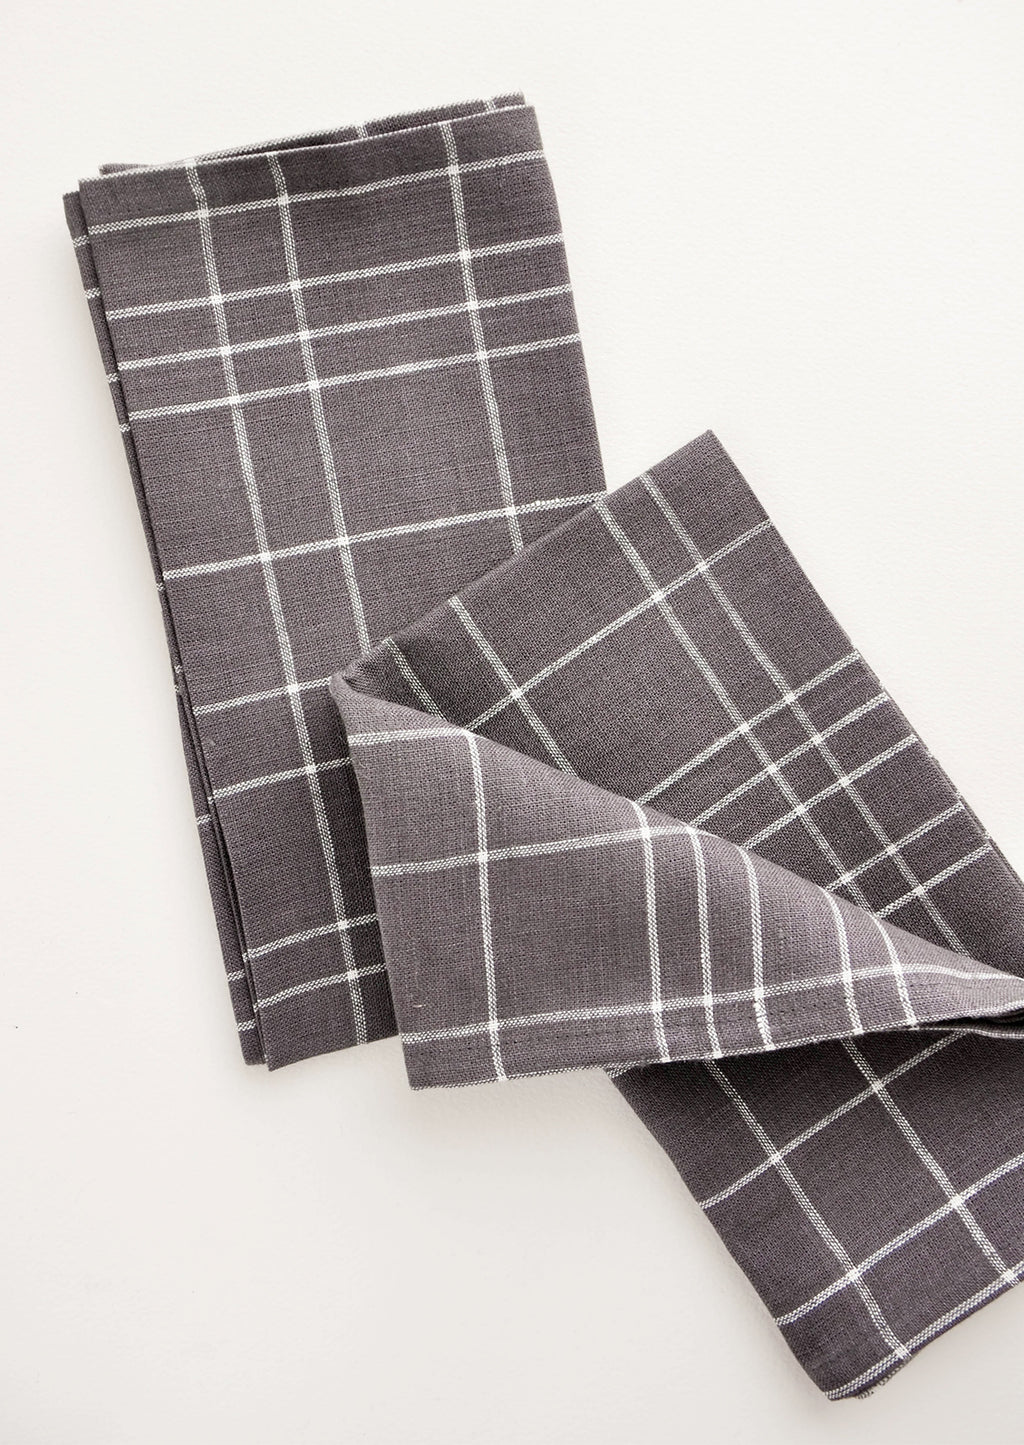 Charcoal Grid: Pair of fabric dinner napkins in grey and white grid pattern